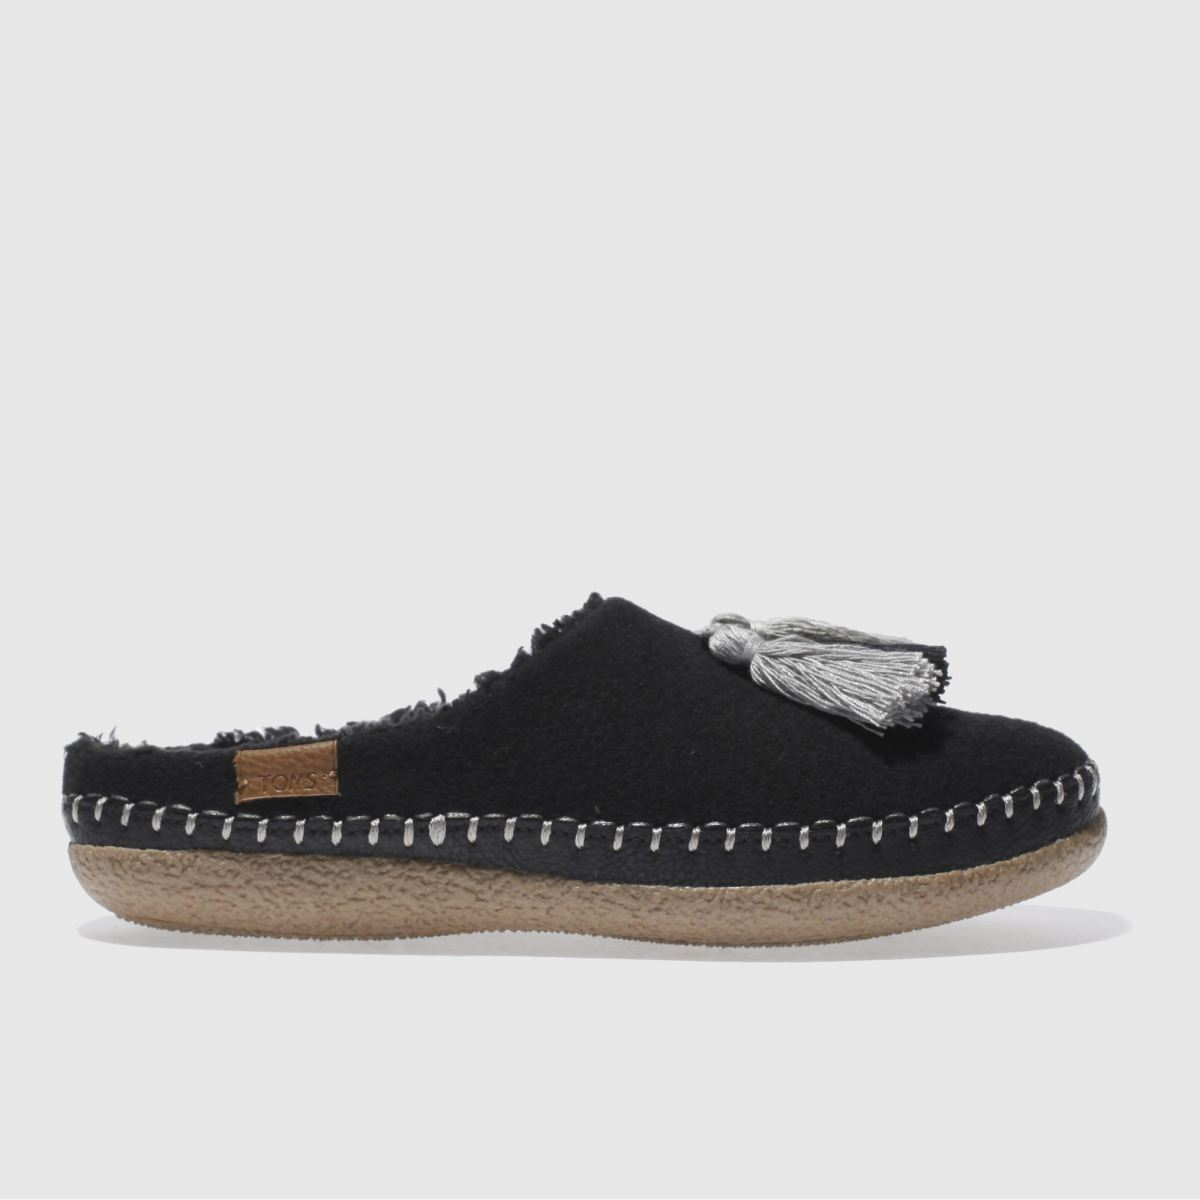 toms black ivy slipper slippers